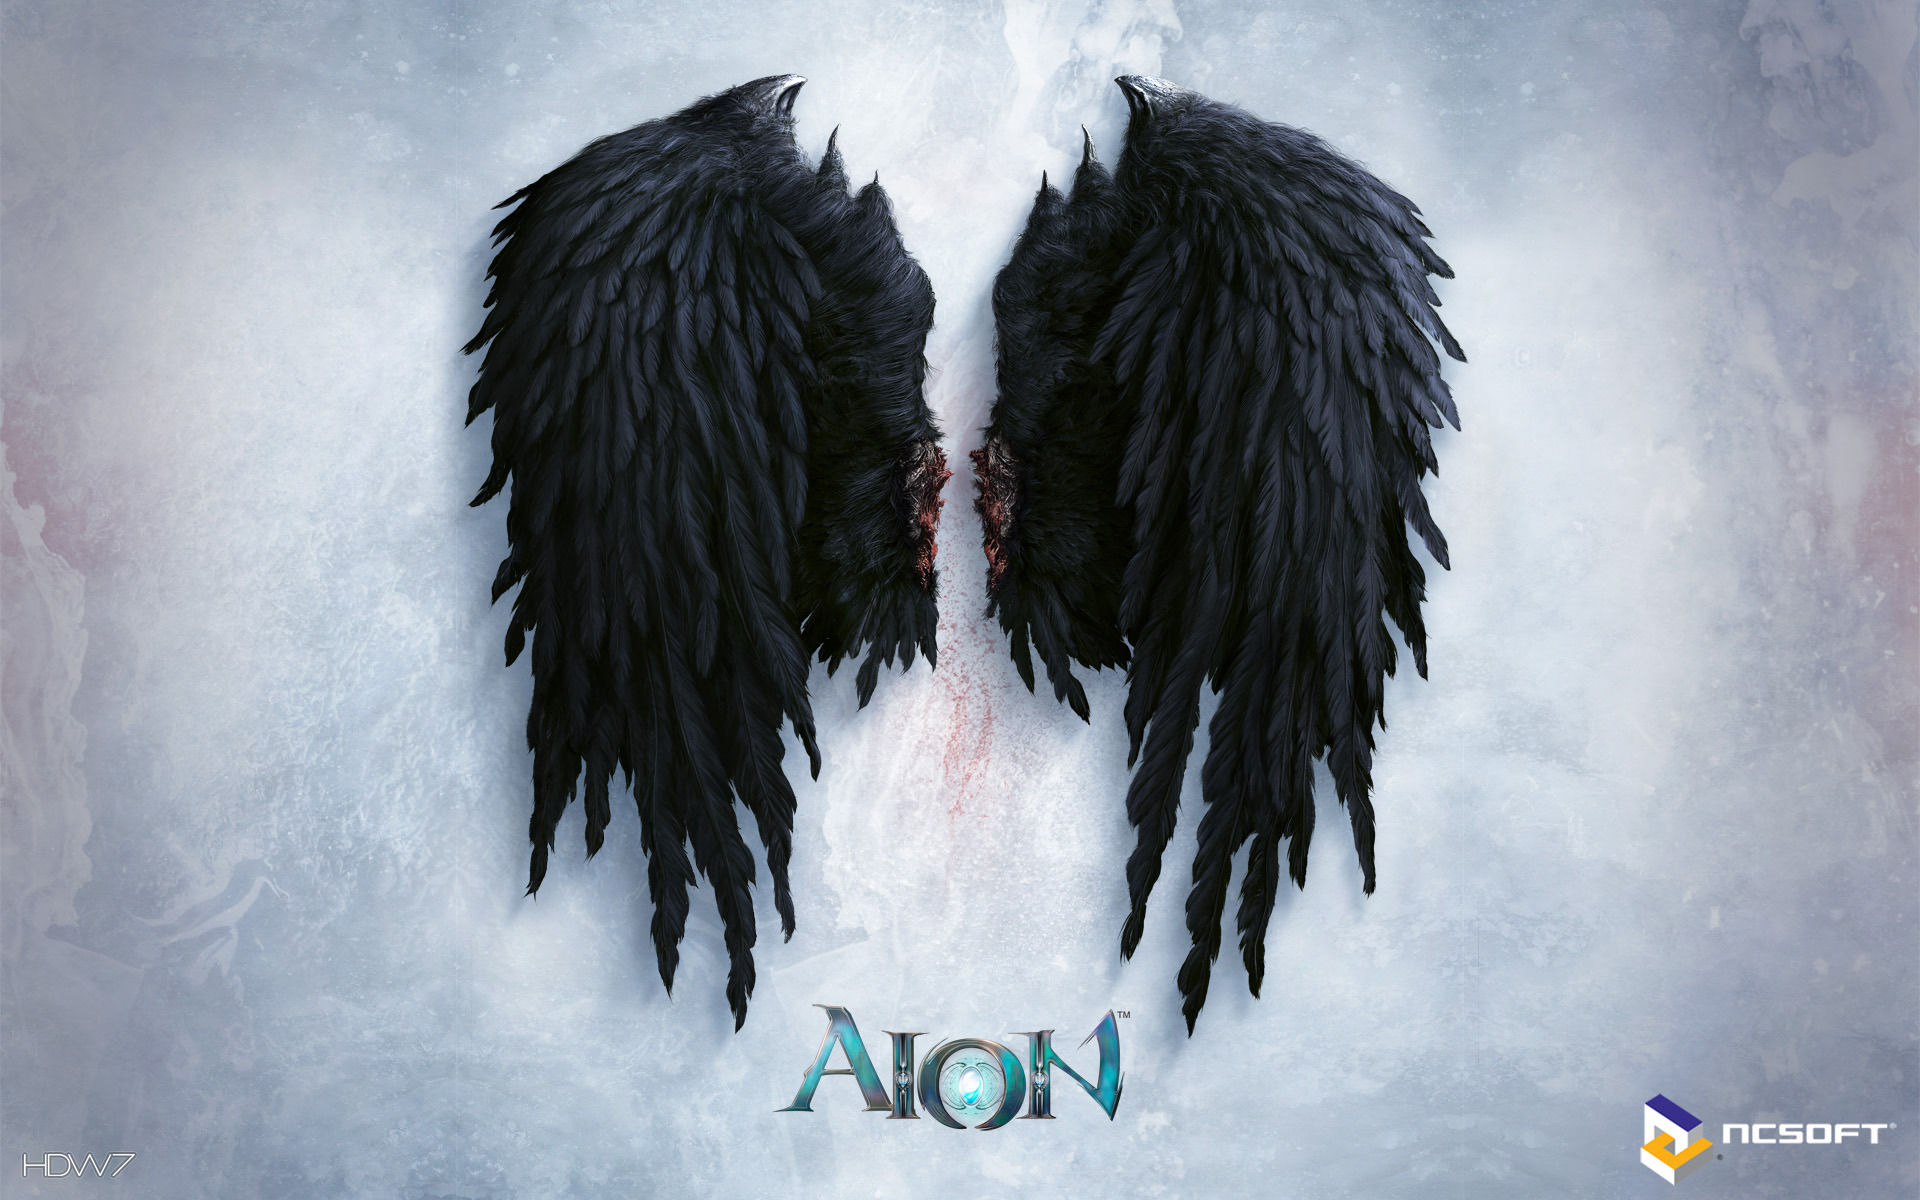 aion black wings widescreen wallpaper